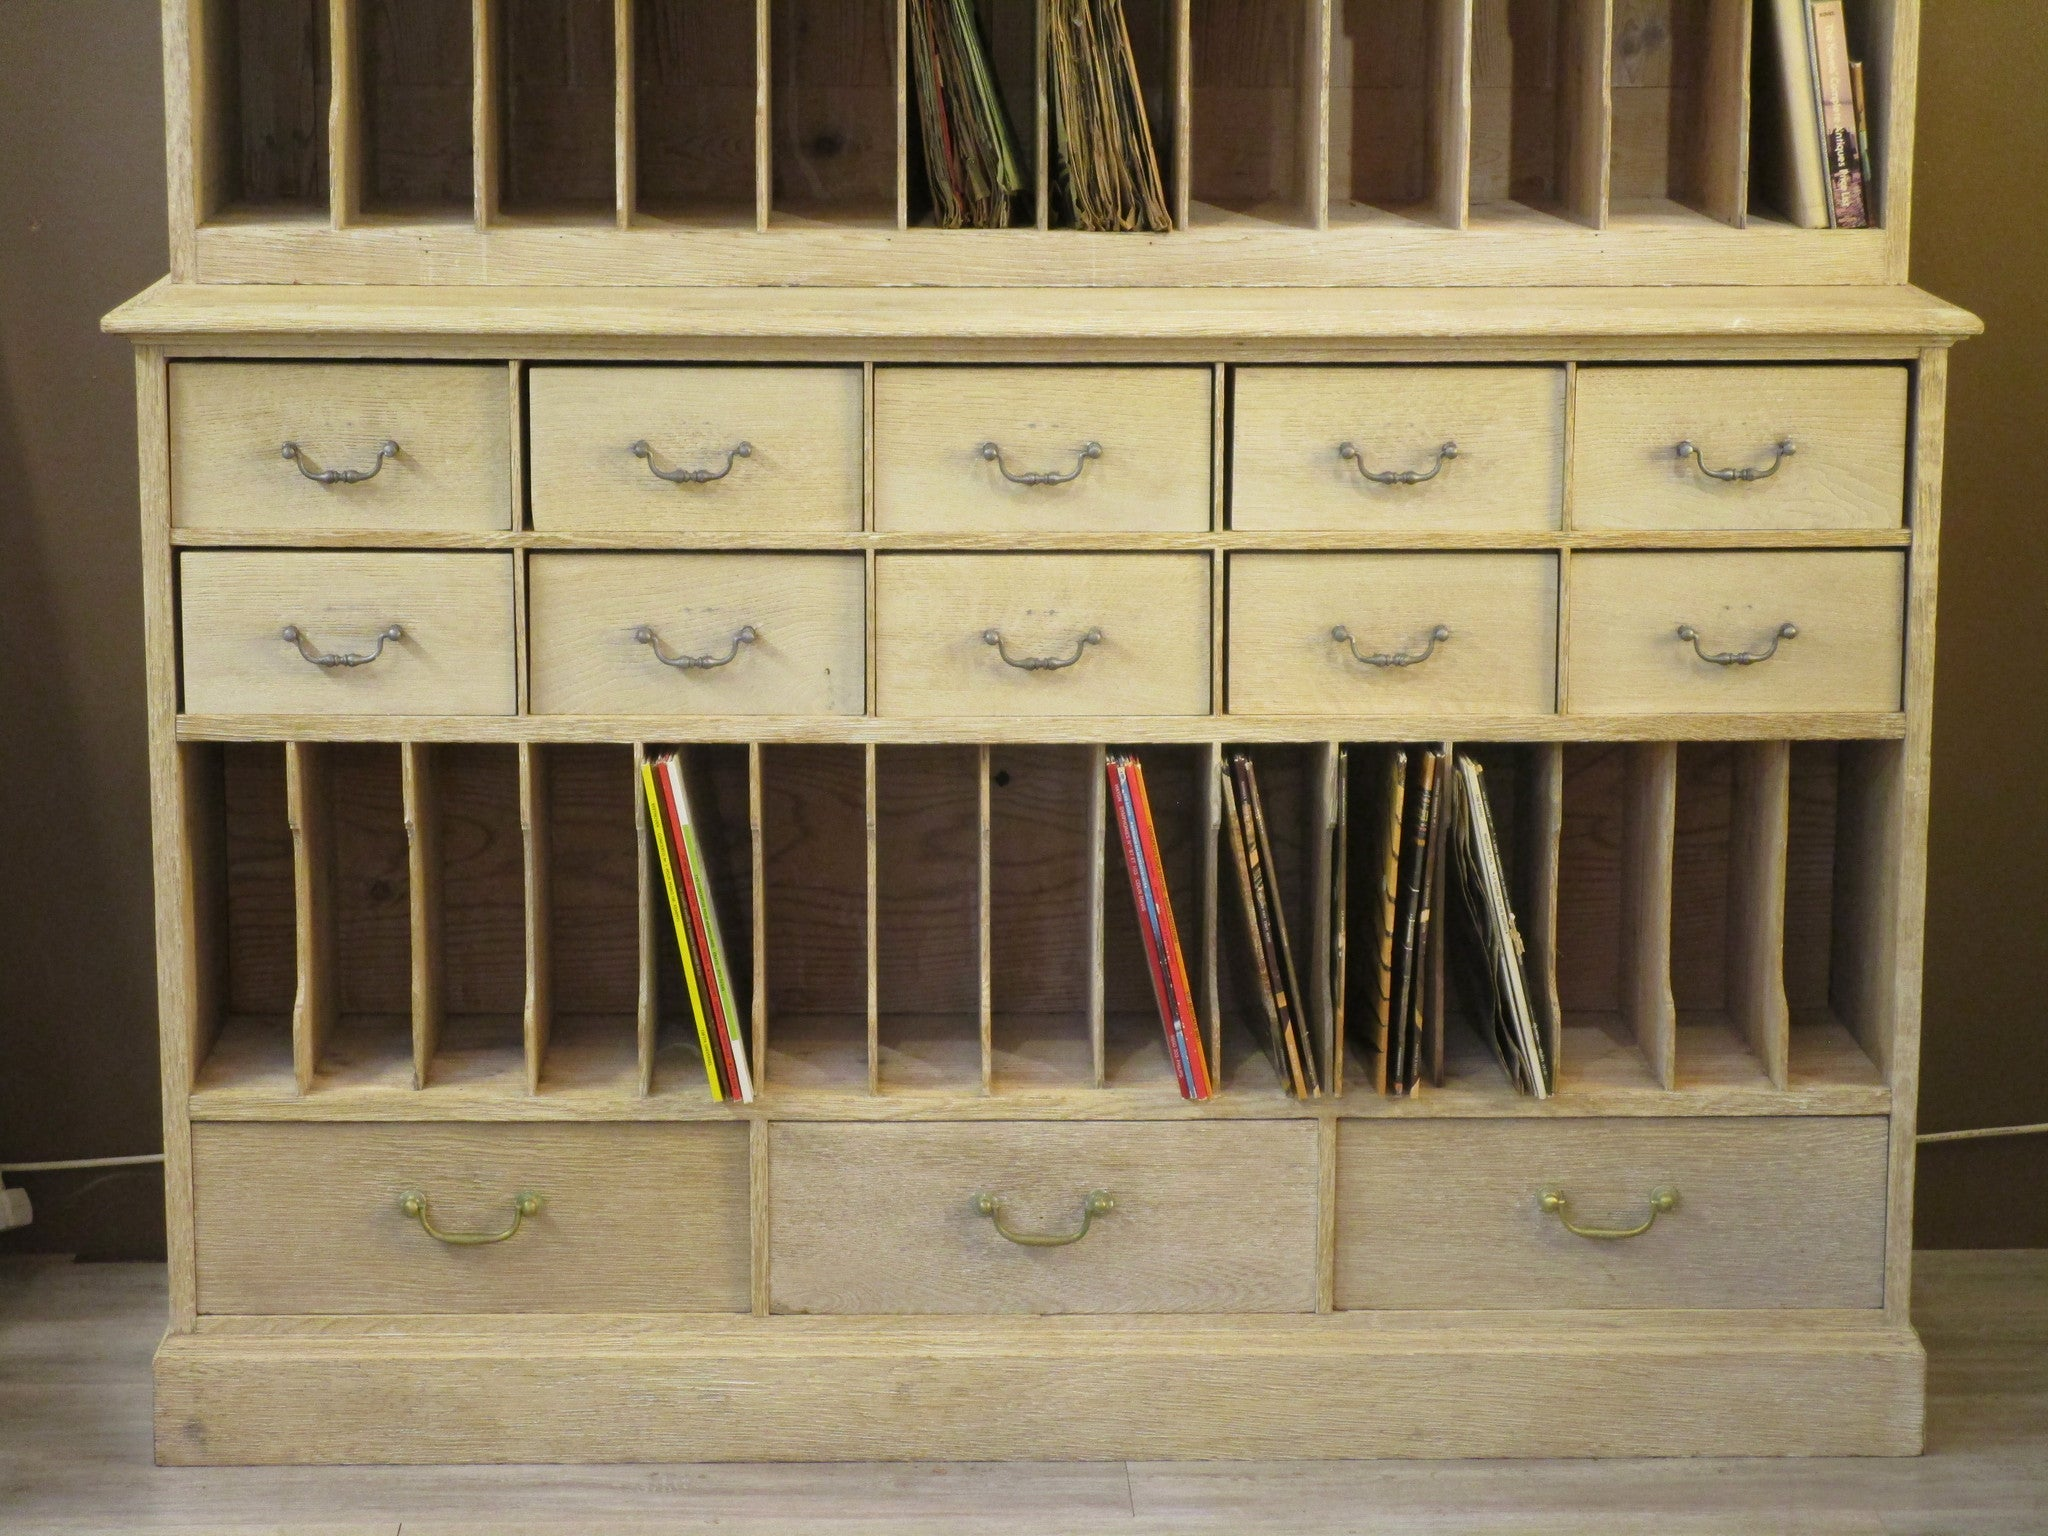 Late 18th century archive cabinet from Roanne